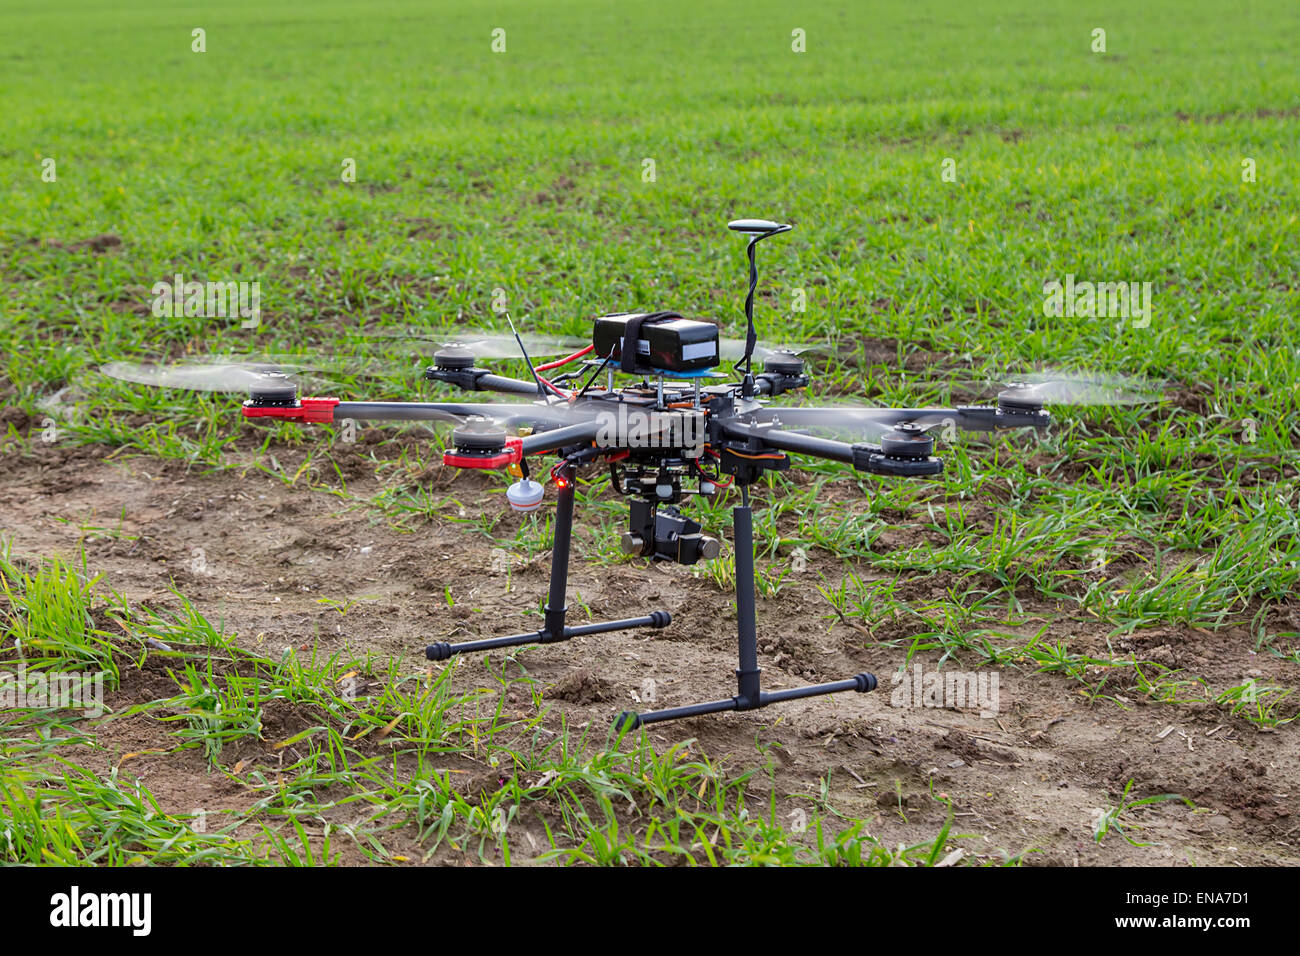 The small drone hexacopter flying over the field - Stock Image